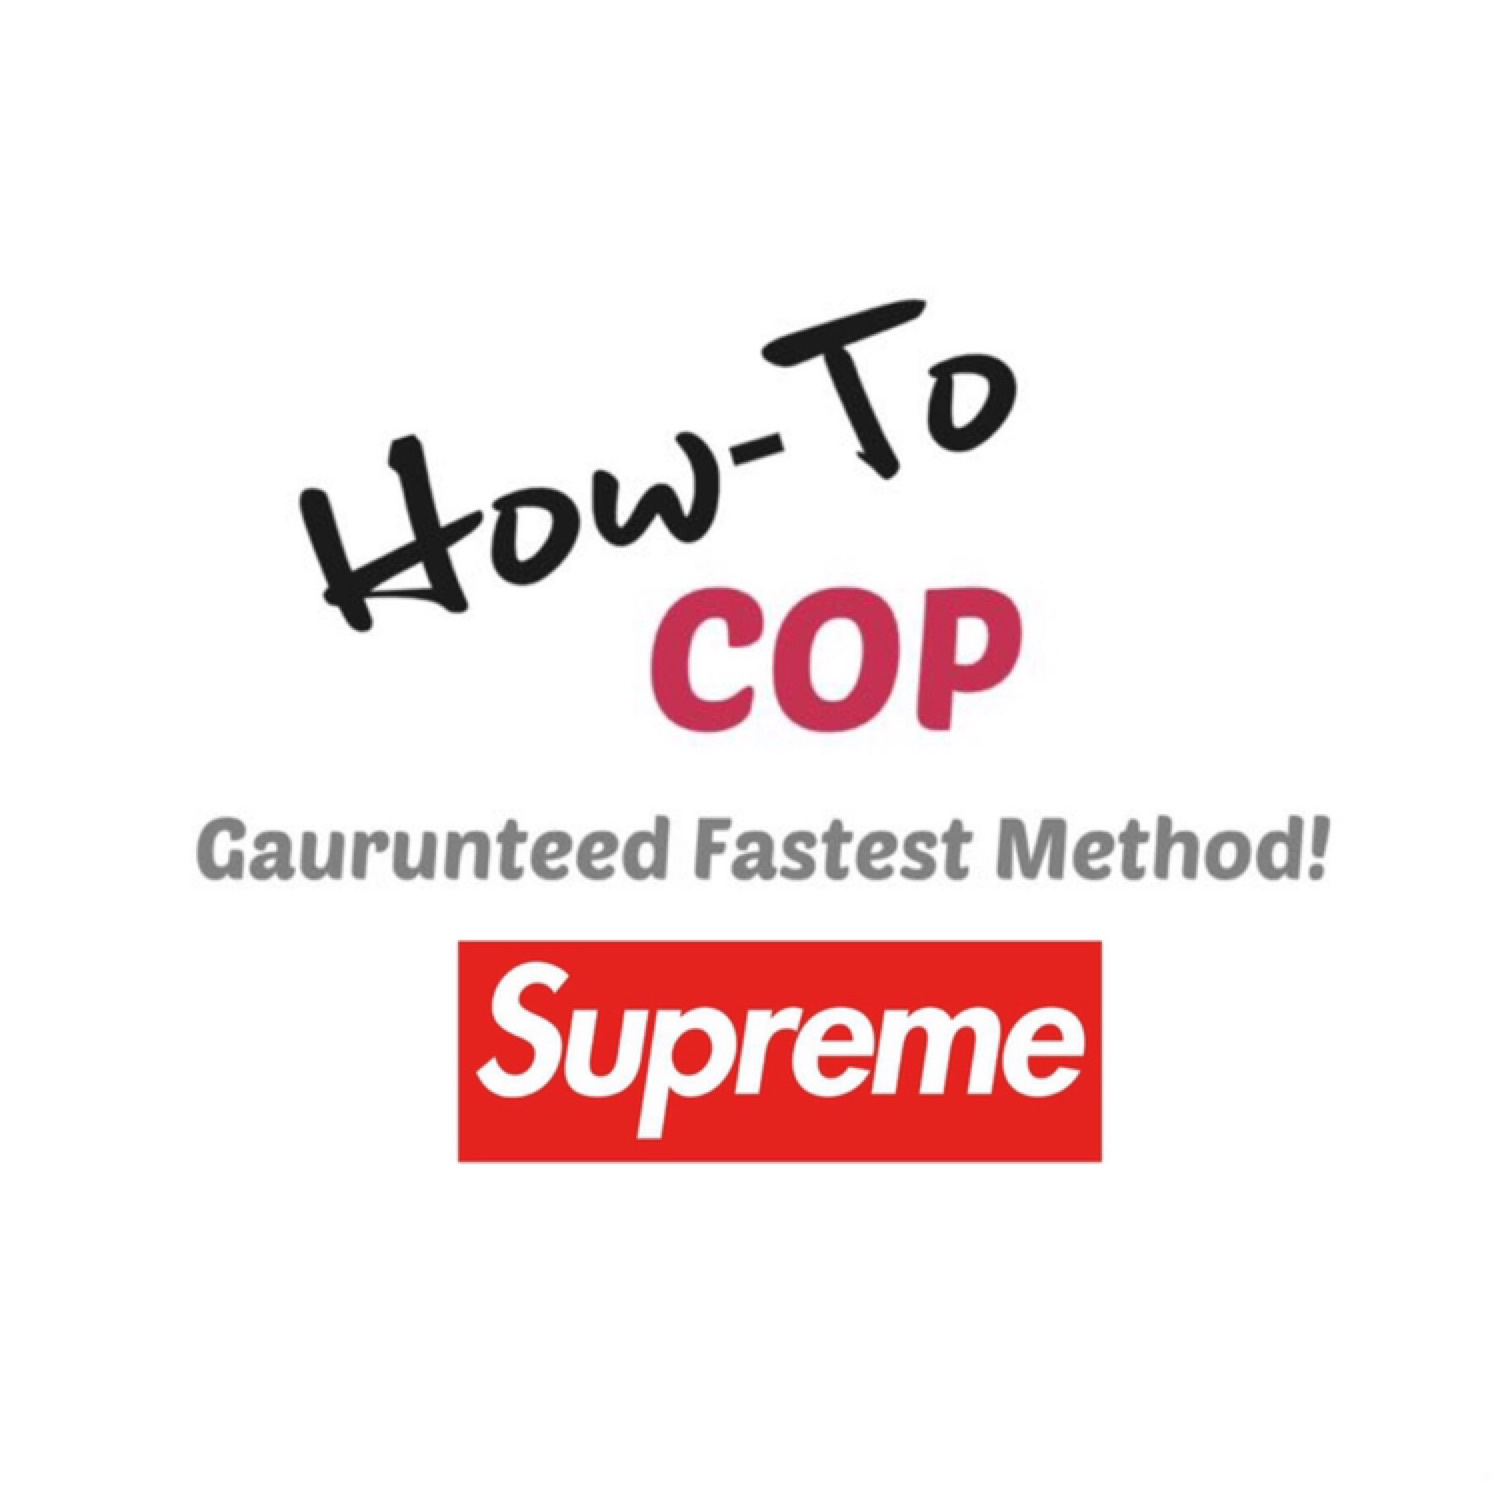 Supreme Ultimate Drop Guide - Fast Method!